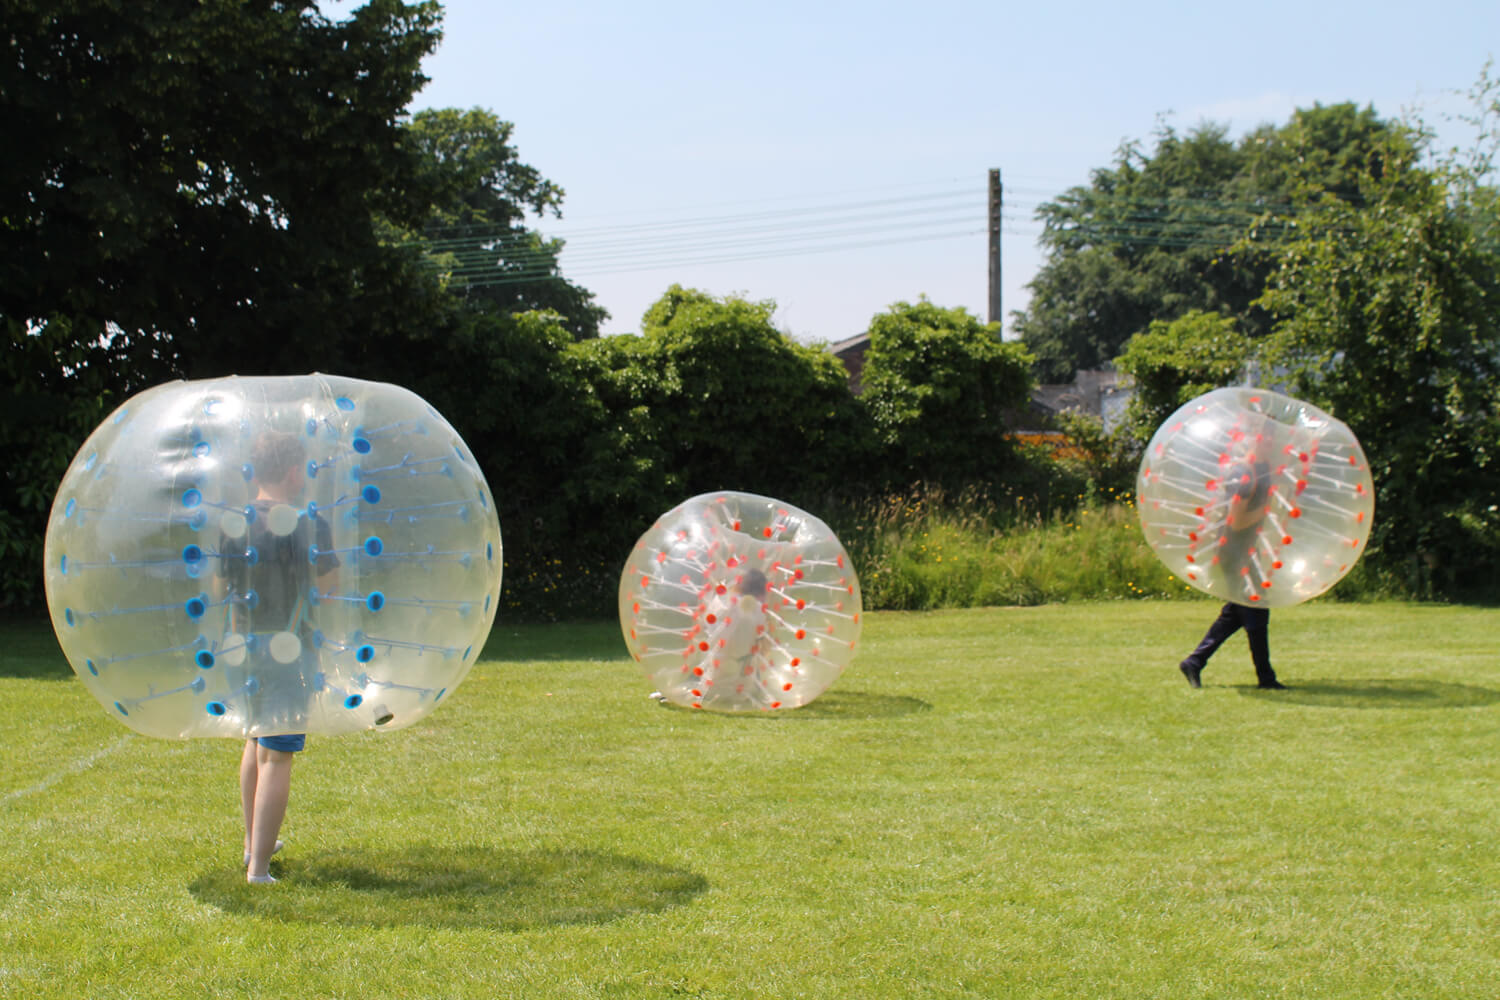 16. Bubble Football